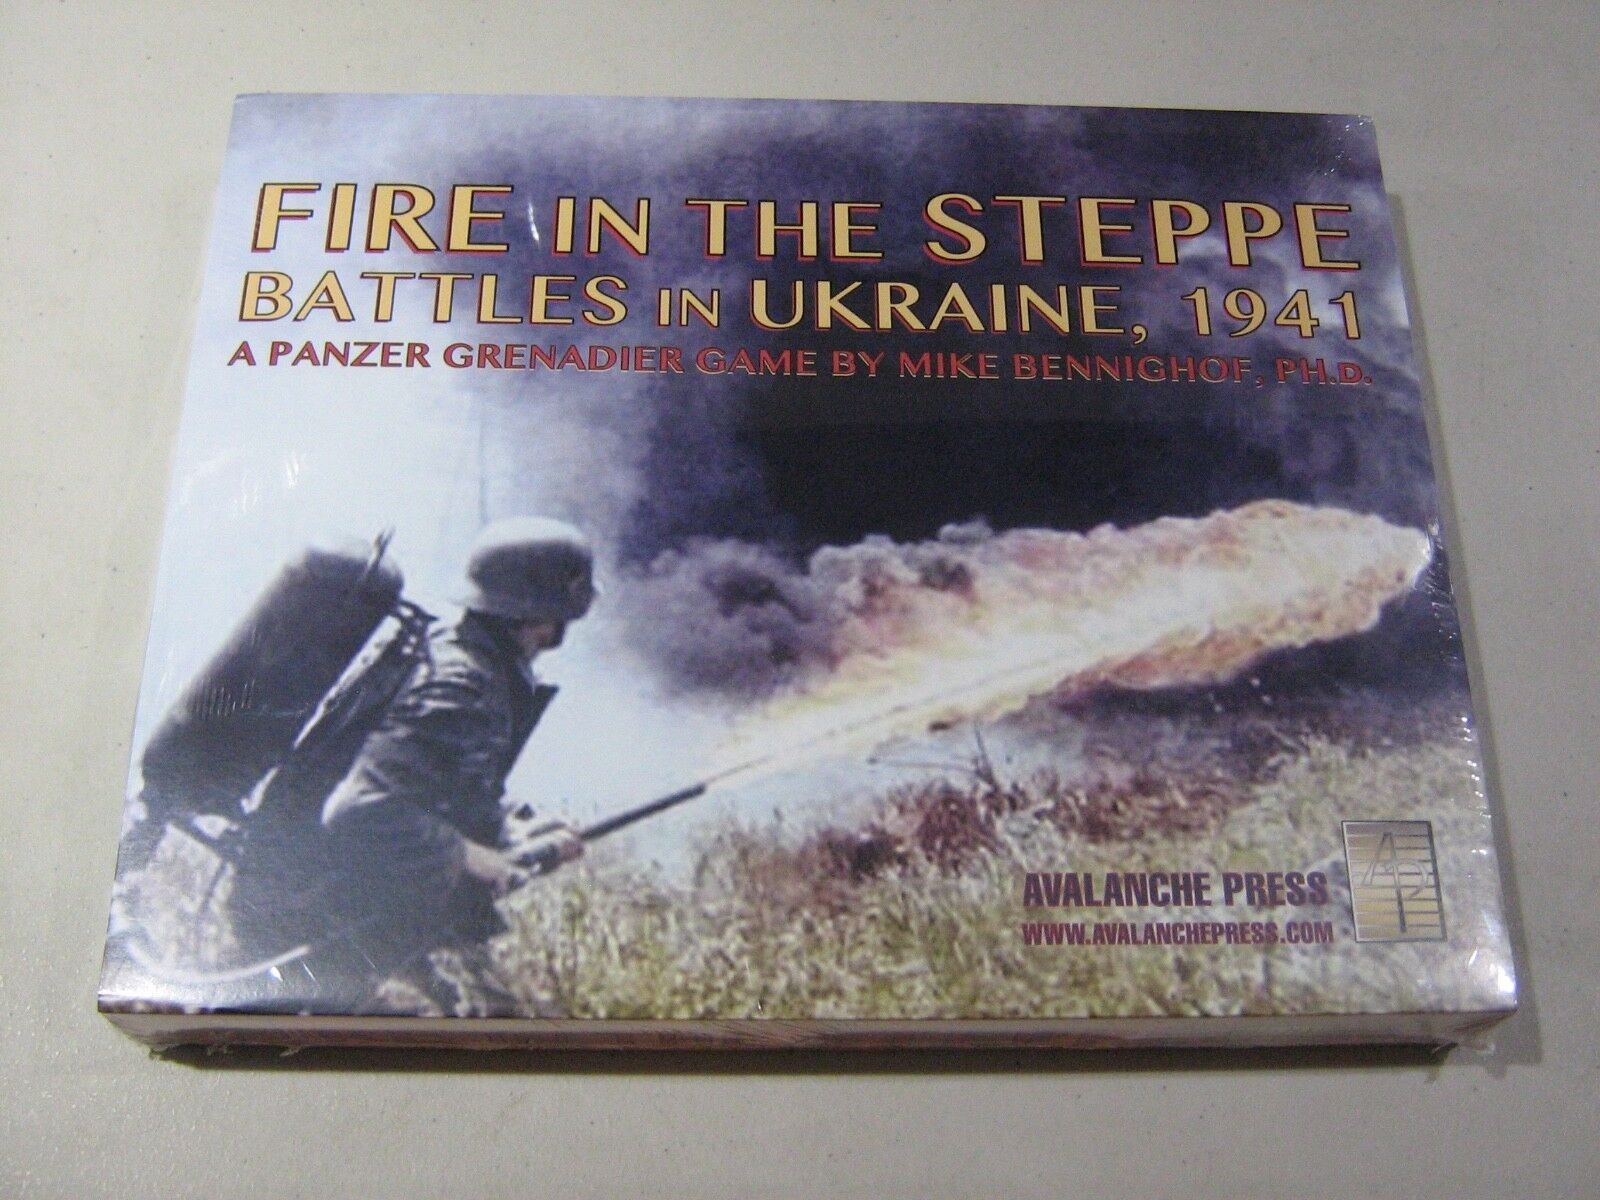 Fire in the Steppe  battles in Ukraine, 1941 (New)